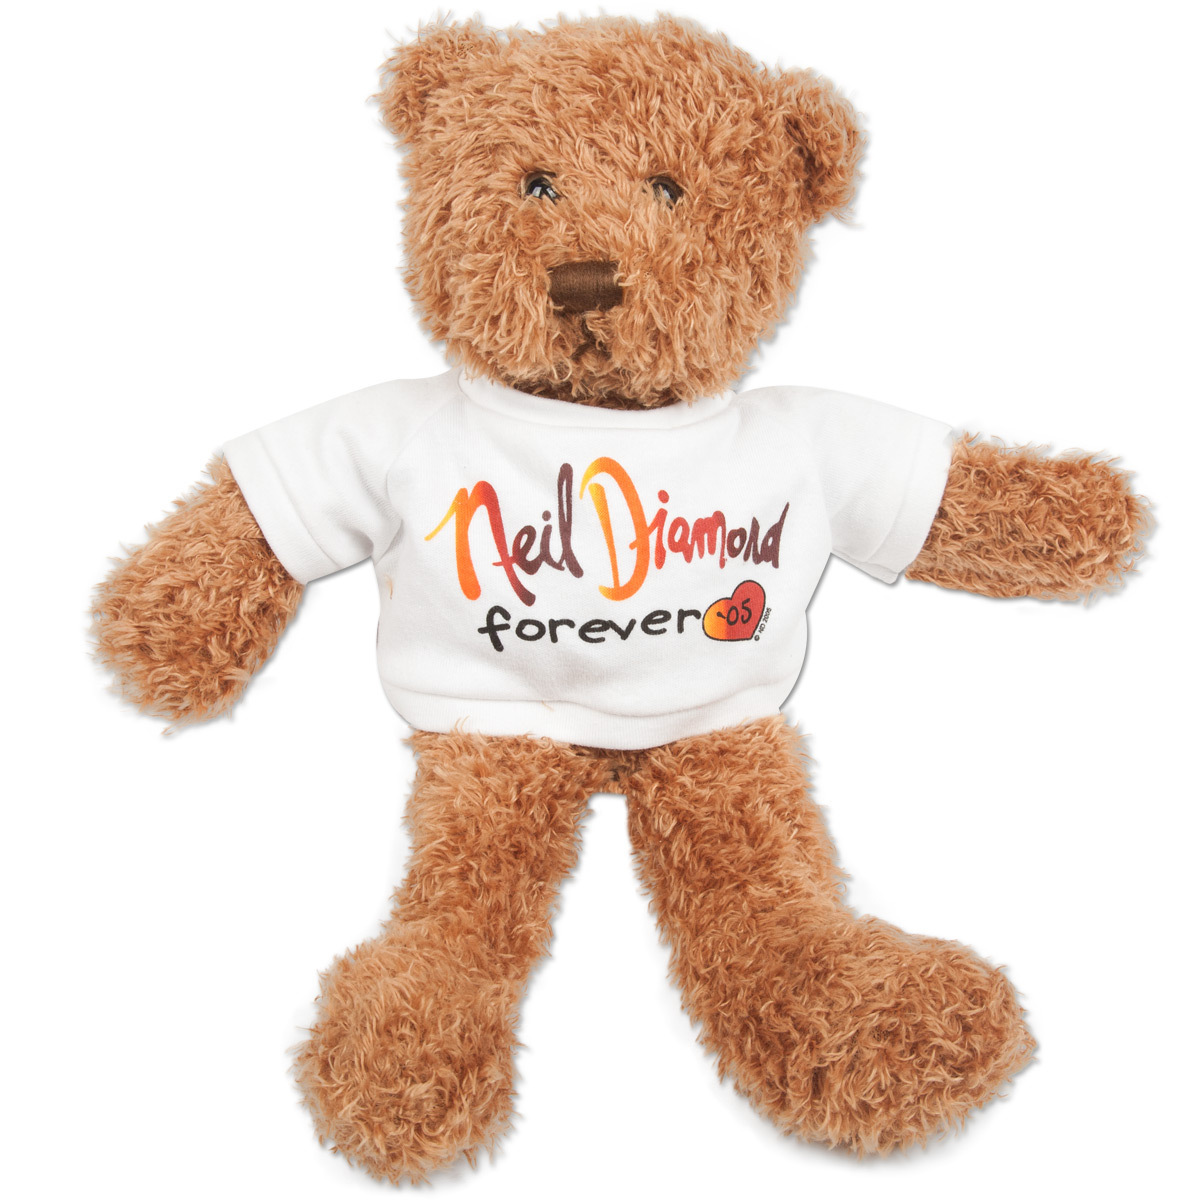 Neil Diamond Forever Plush Bear - $10